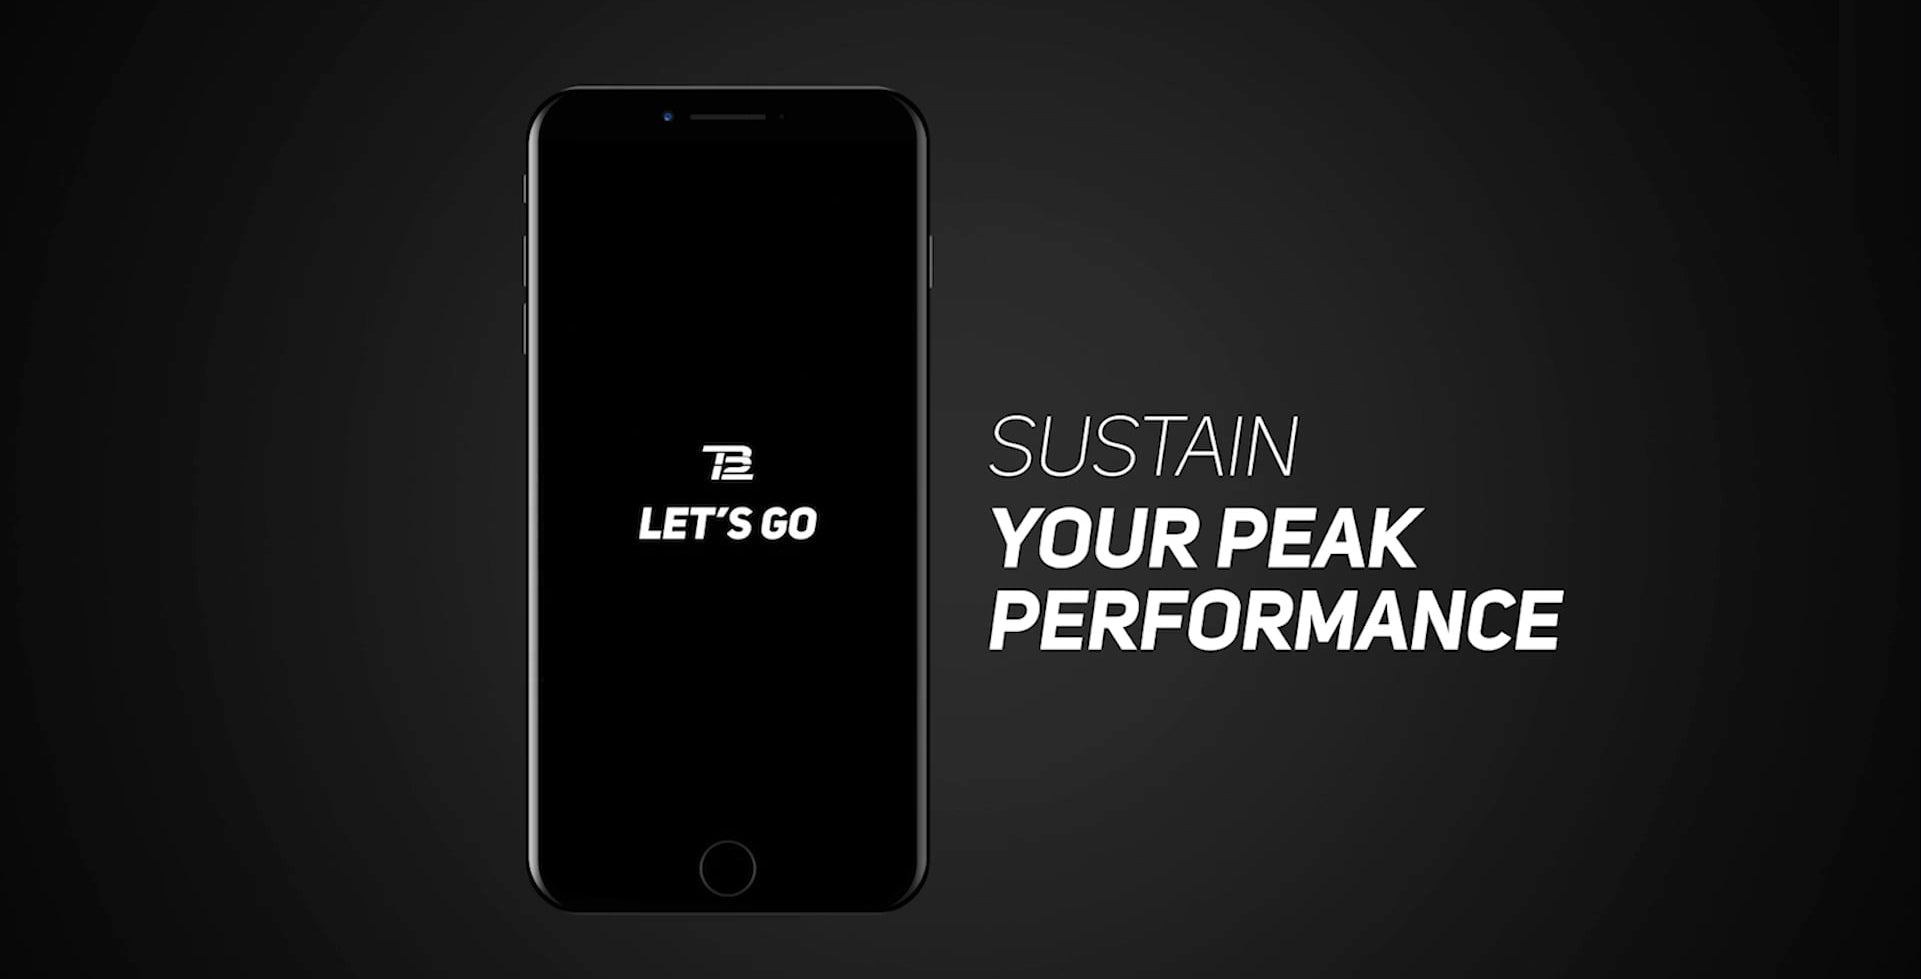 Sustain your peak performance